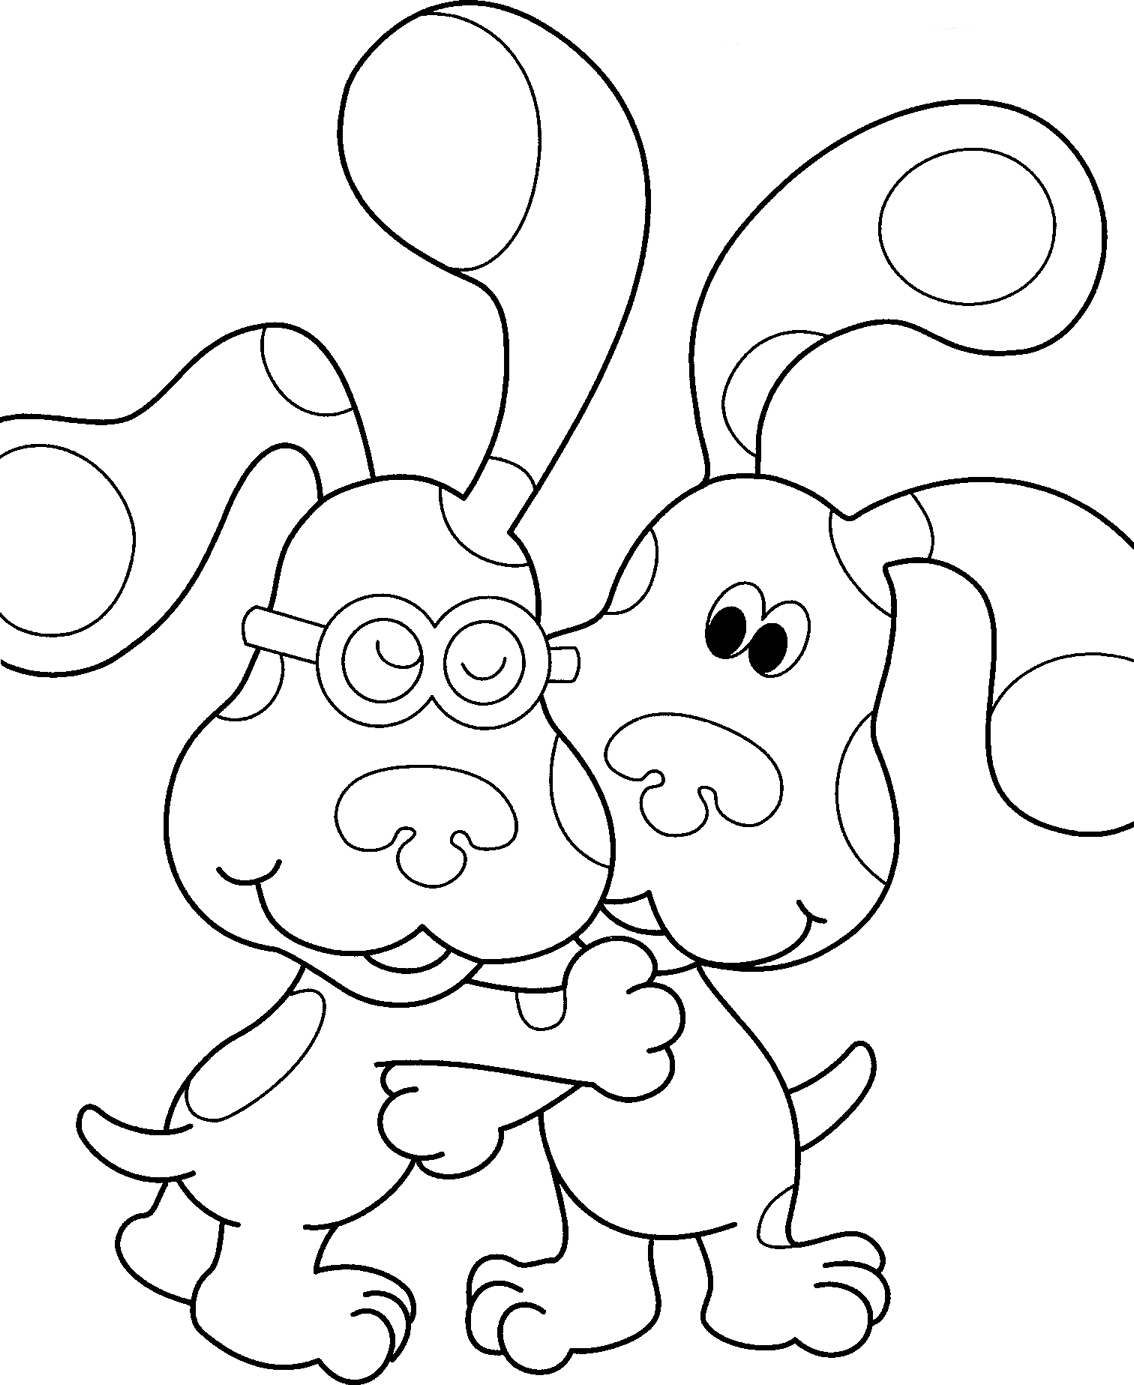 coloring pages of blues-clues,printable,coloring pages